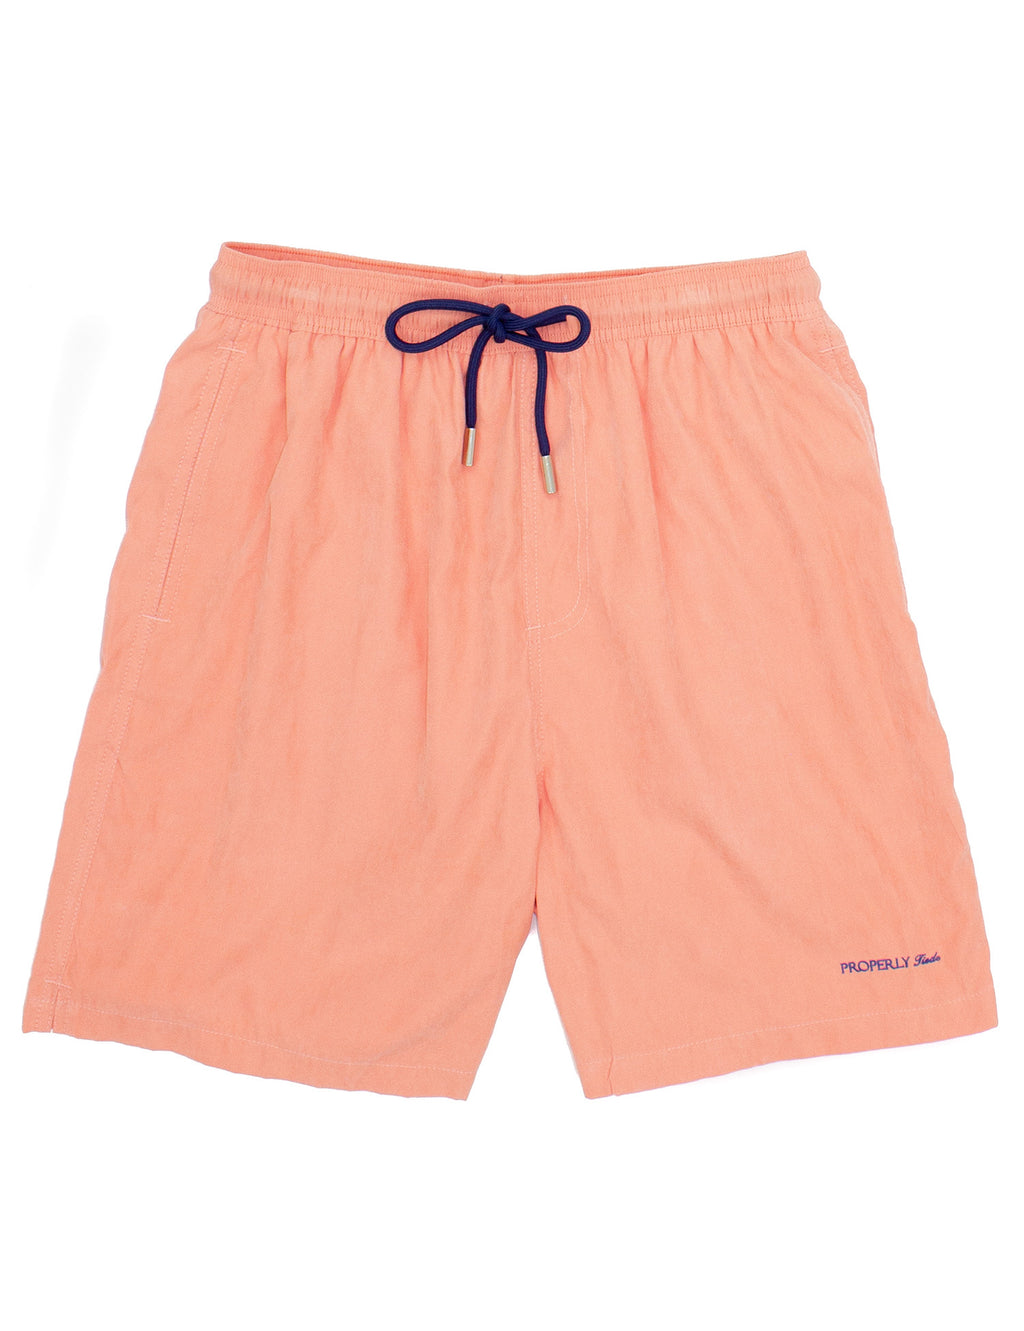 Properly Tied Boys Swim Trunks - Melon